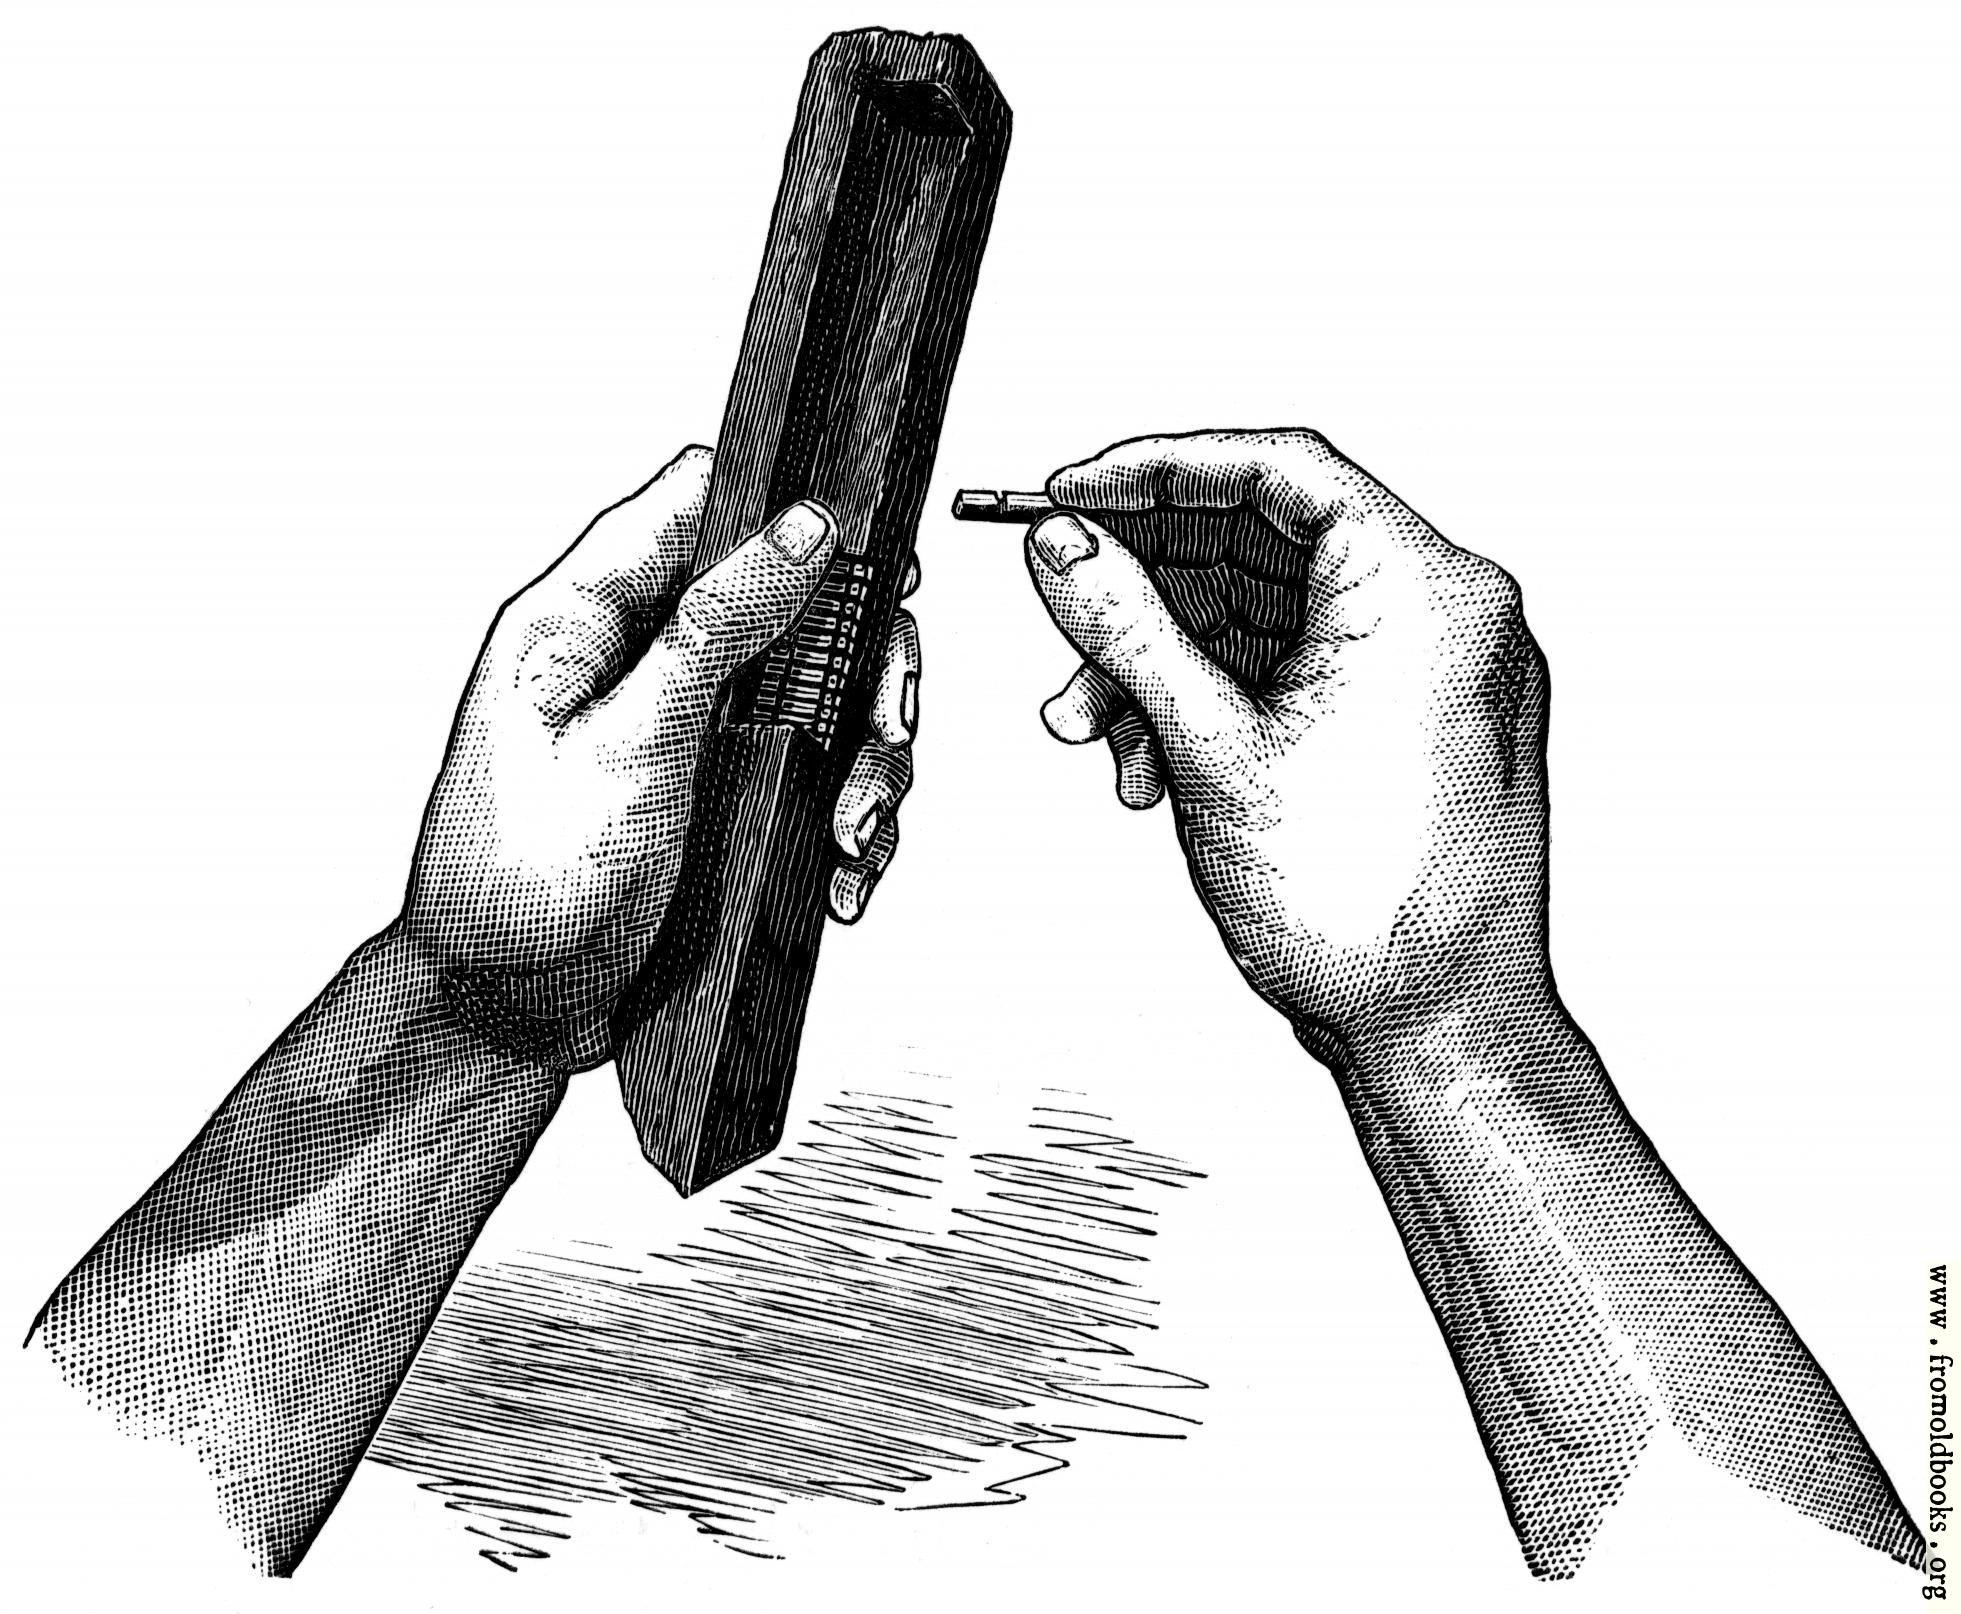 [Picture: Fifteenth Century Wooden Composing Stick]